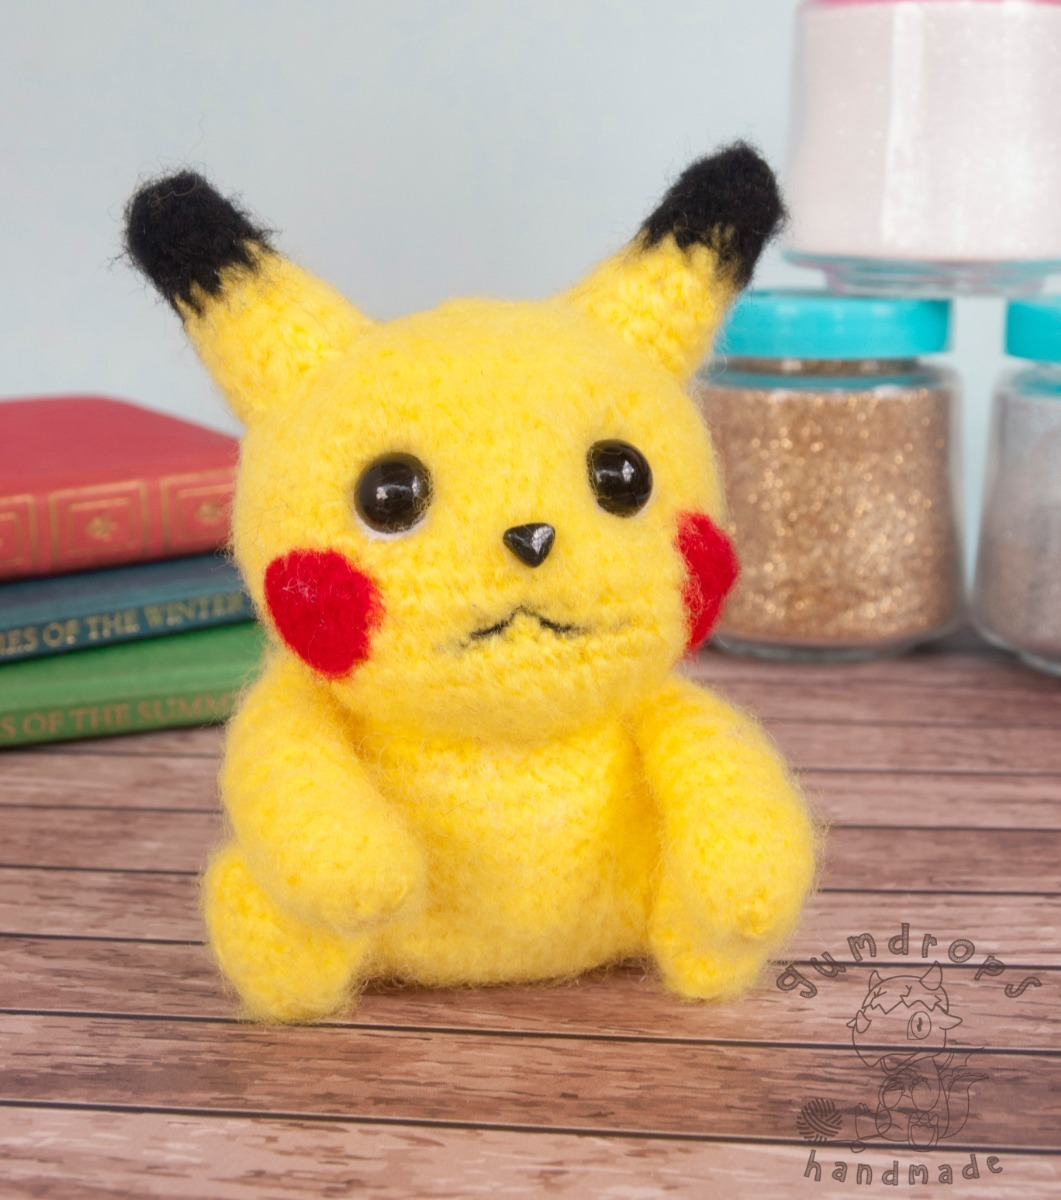 Pikachu Medium Amigurumi Pokemon Plush: Amazon.co.uk: Handmade | 1200x1061